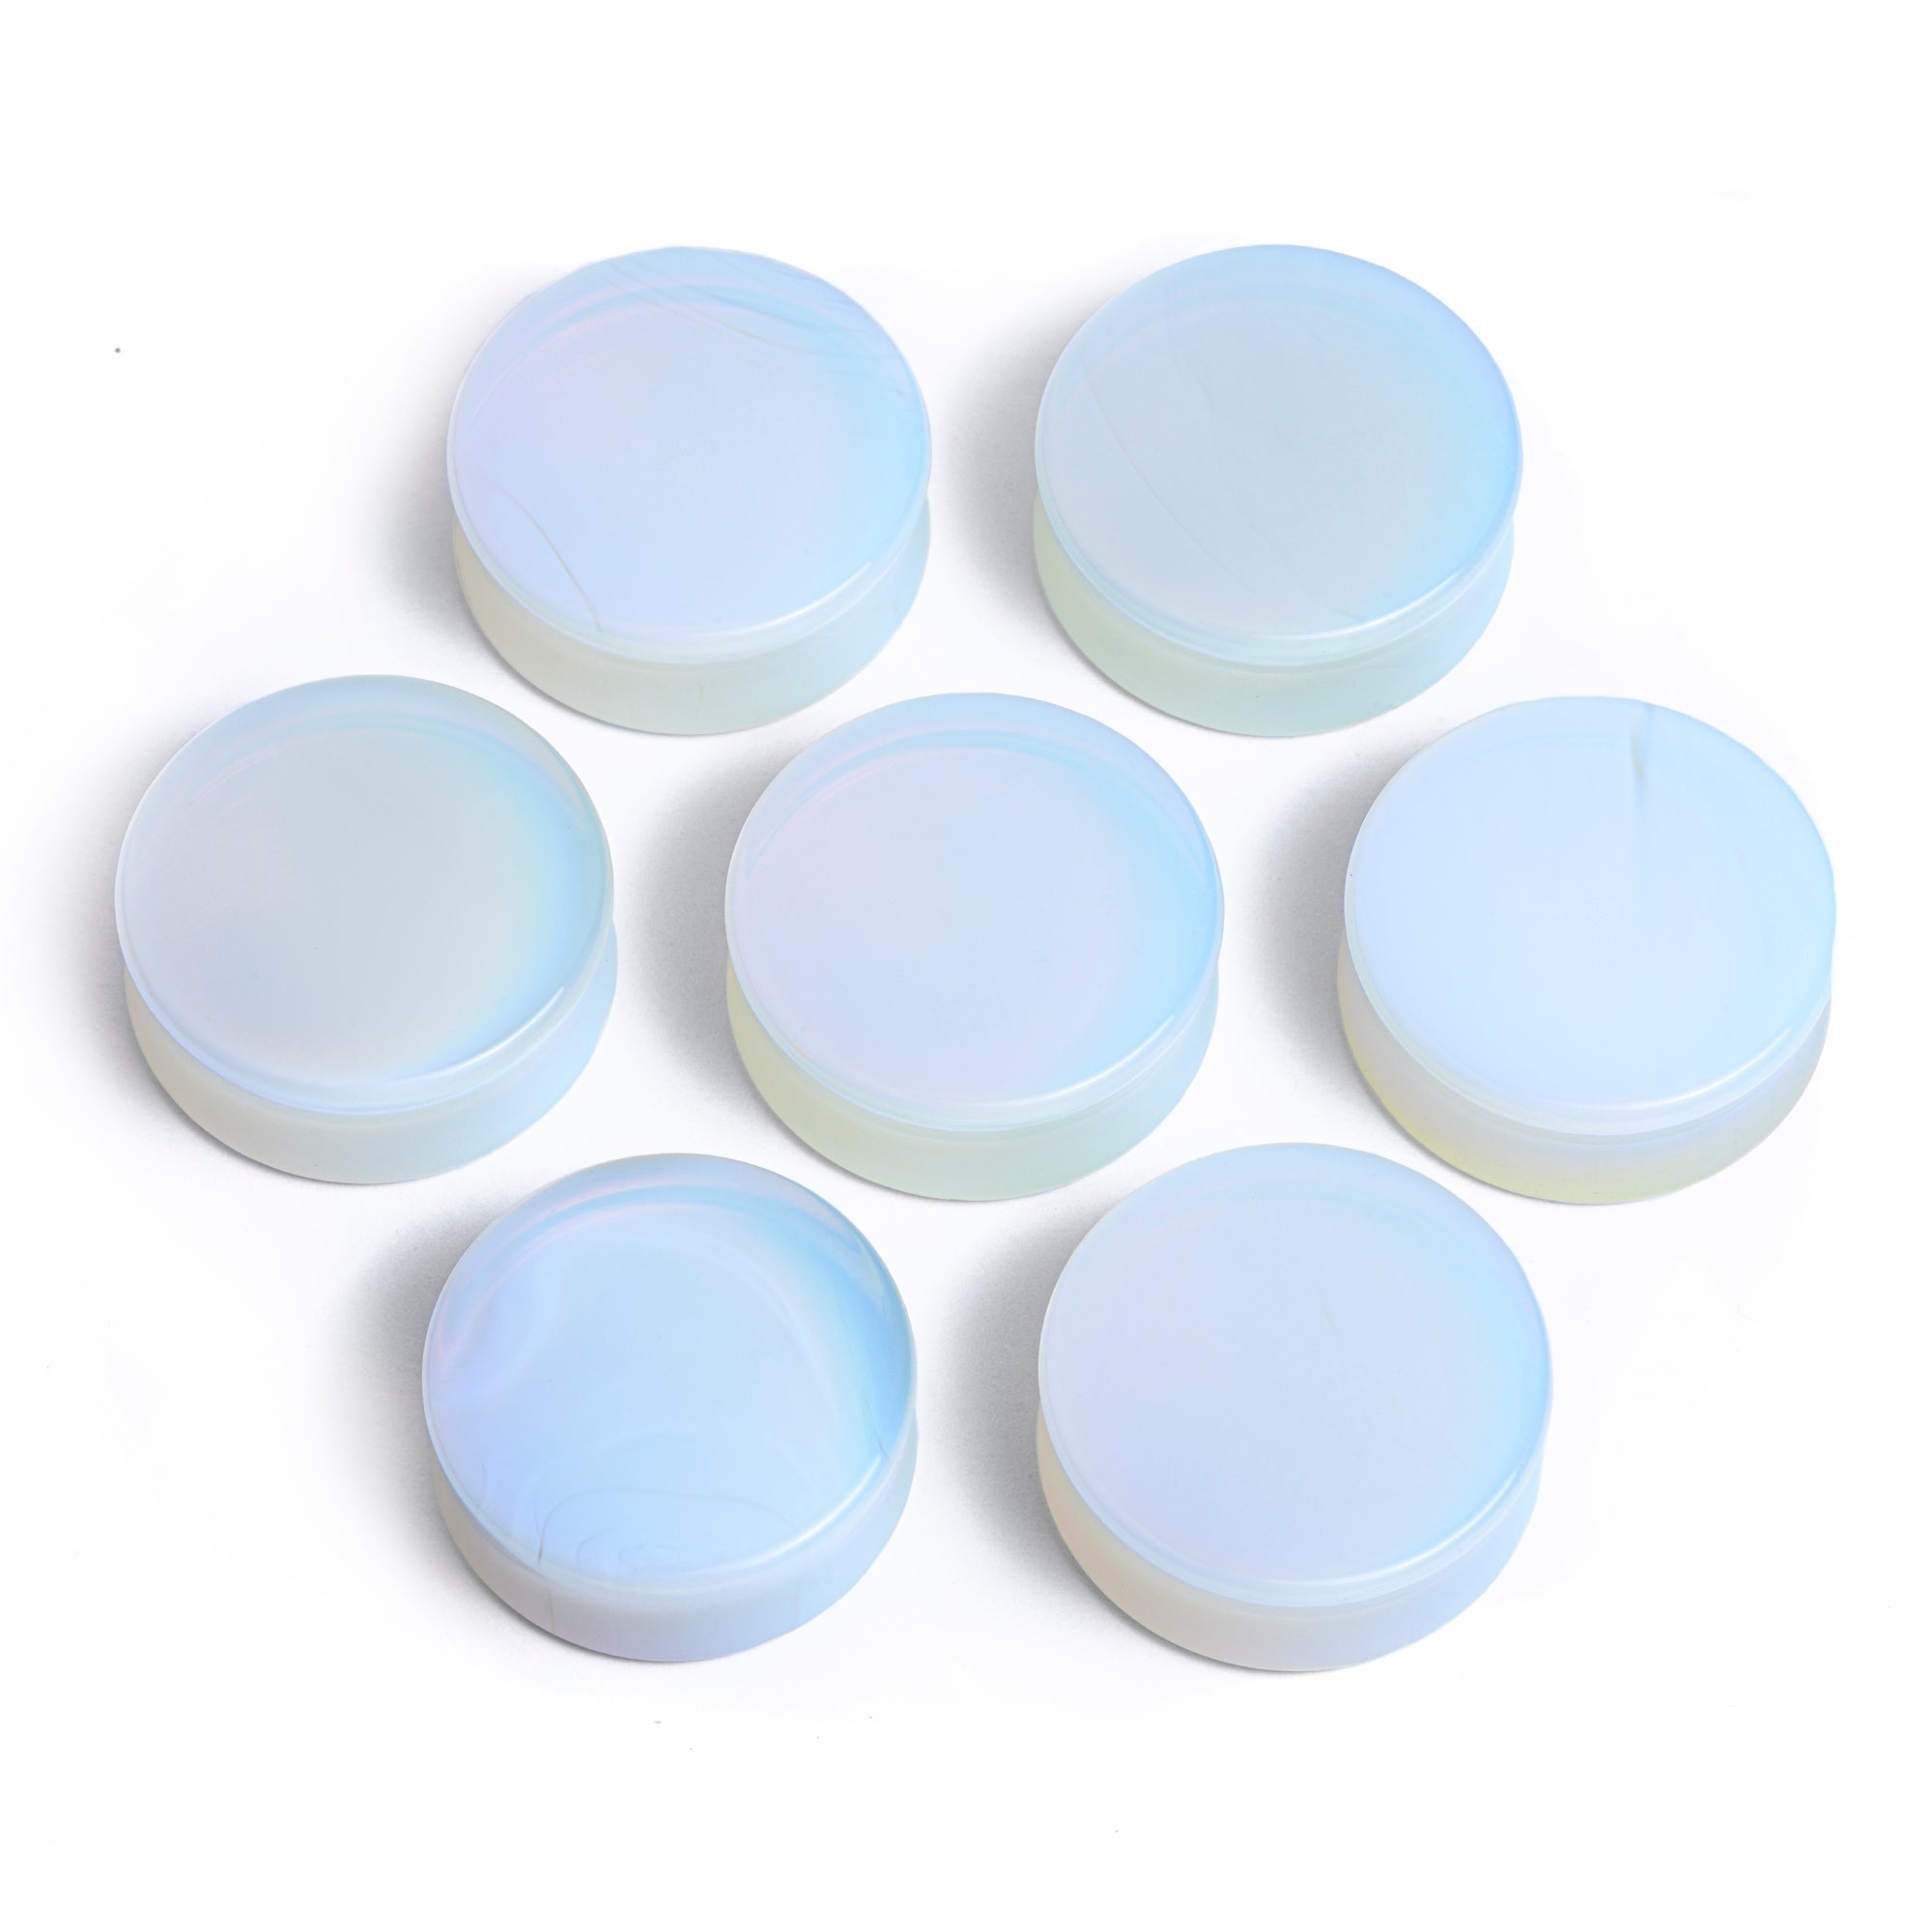 Opalite Moon Shaped Double Flared Plugs 16mm 18mm 20mm 22mm 25mm 28mm 30mm 32mm